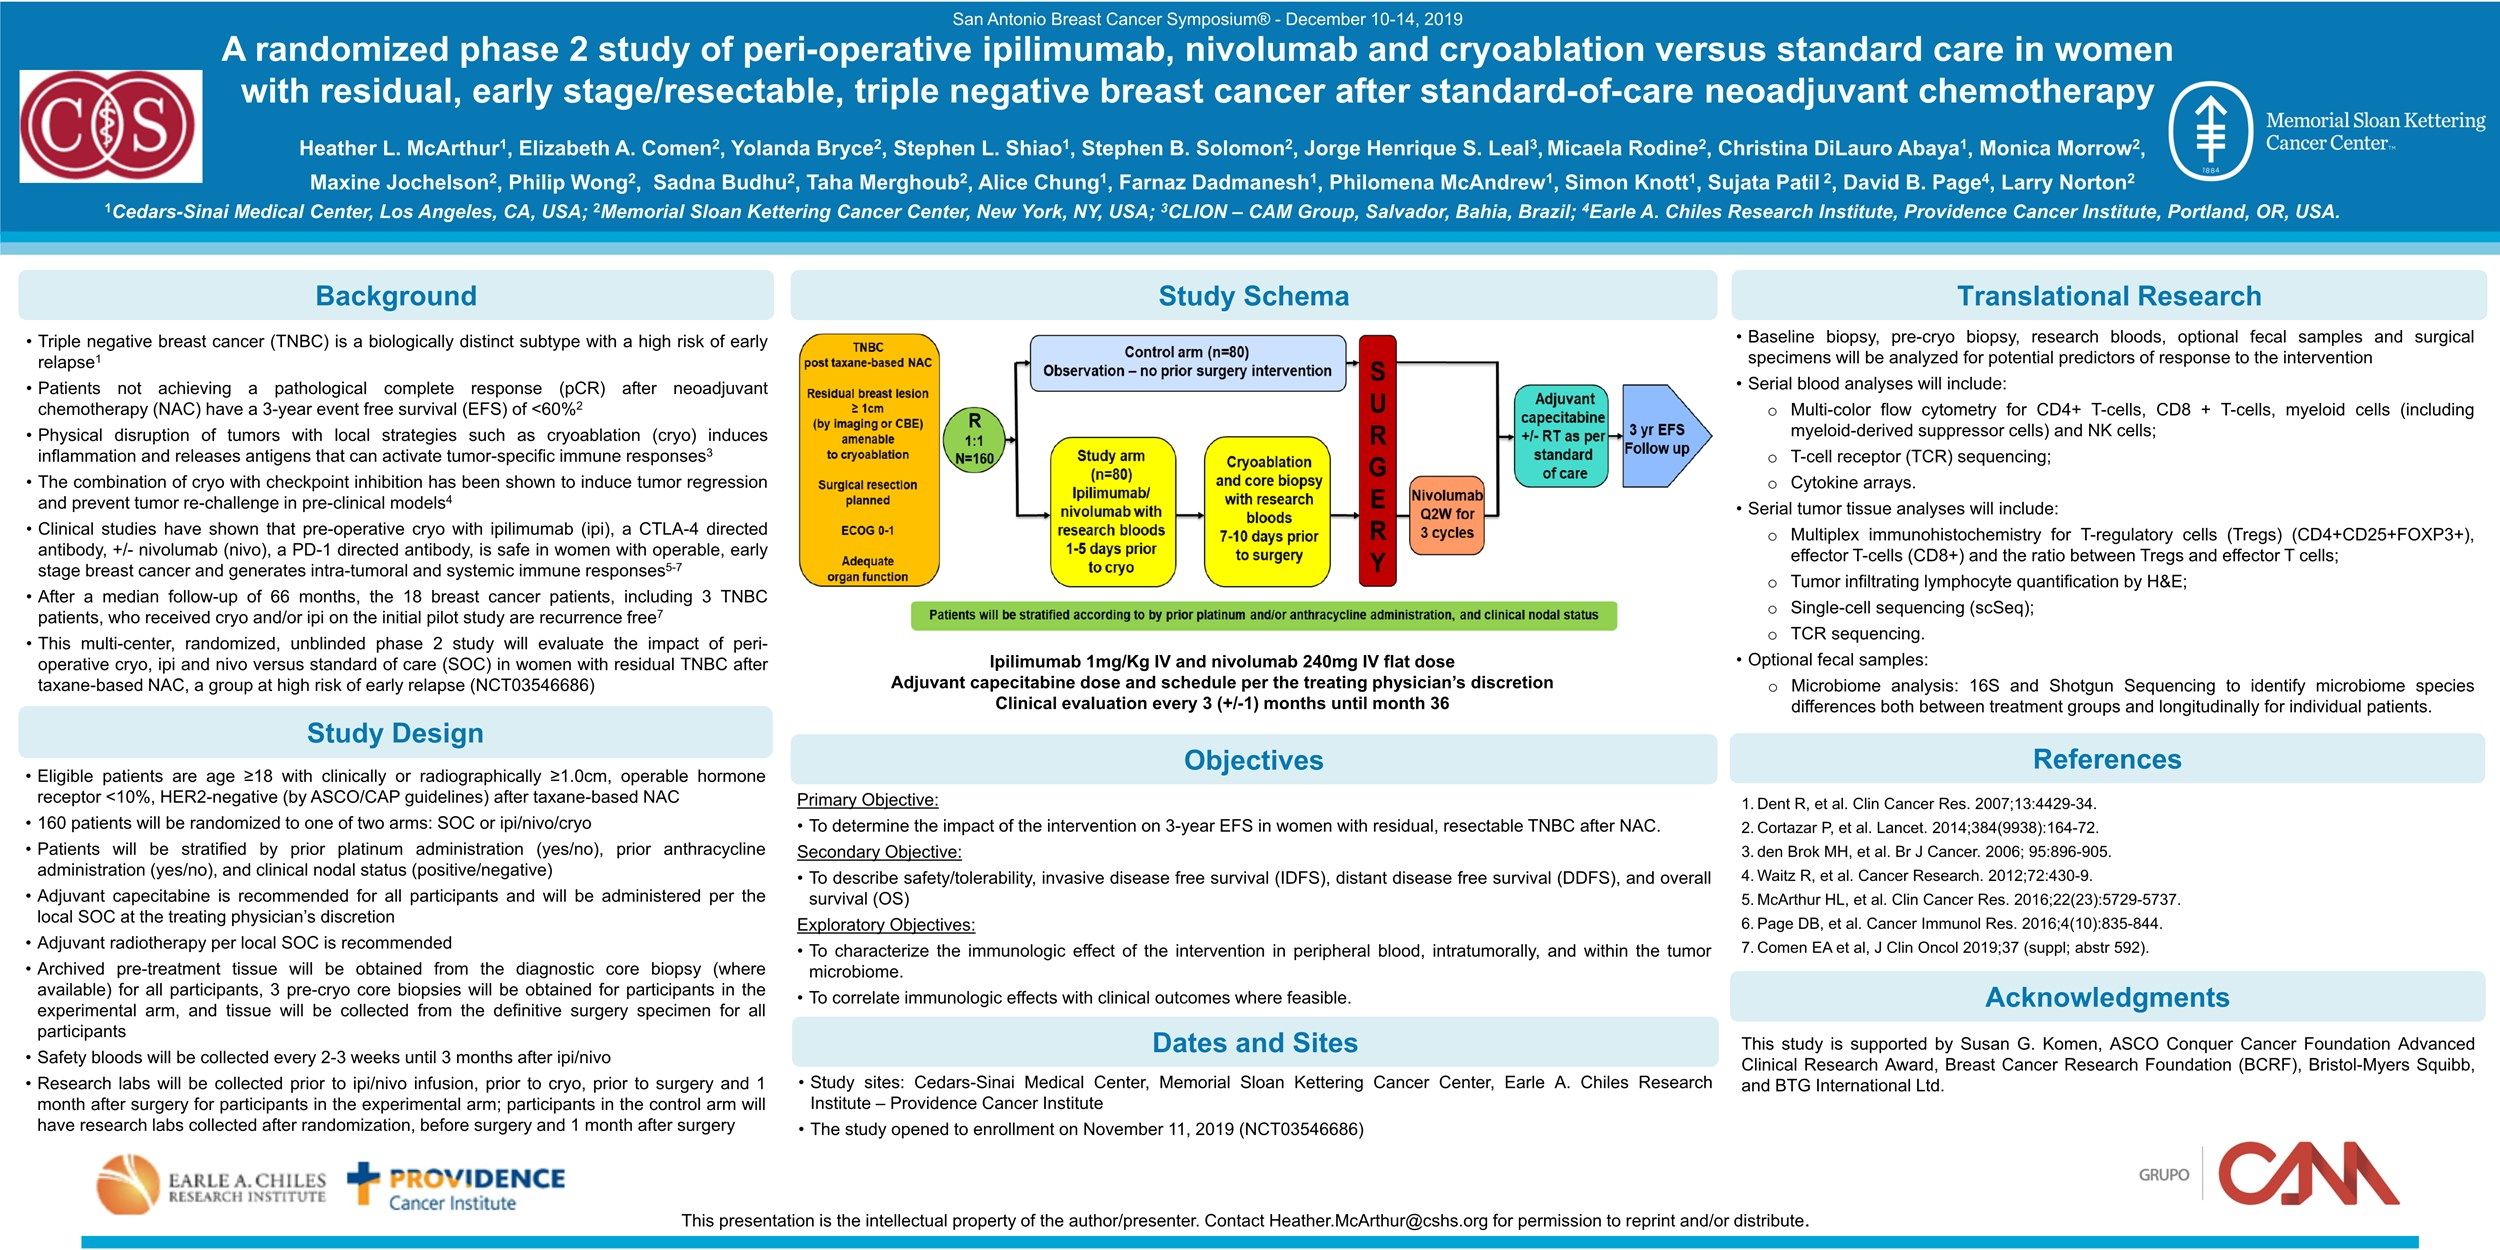 A randomized phase 2 study of peri-operative ipilimumab, nivolumab and cryoablation versus standard care in women with residual, early stage/resectable, triple negative breast cancer after standard-of-care neoadjuvant chemotherapy